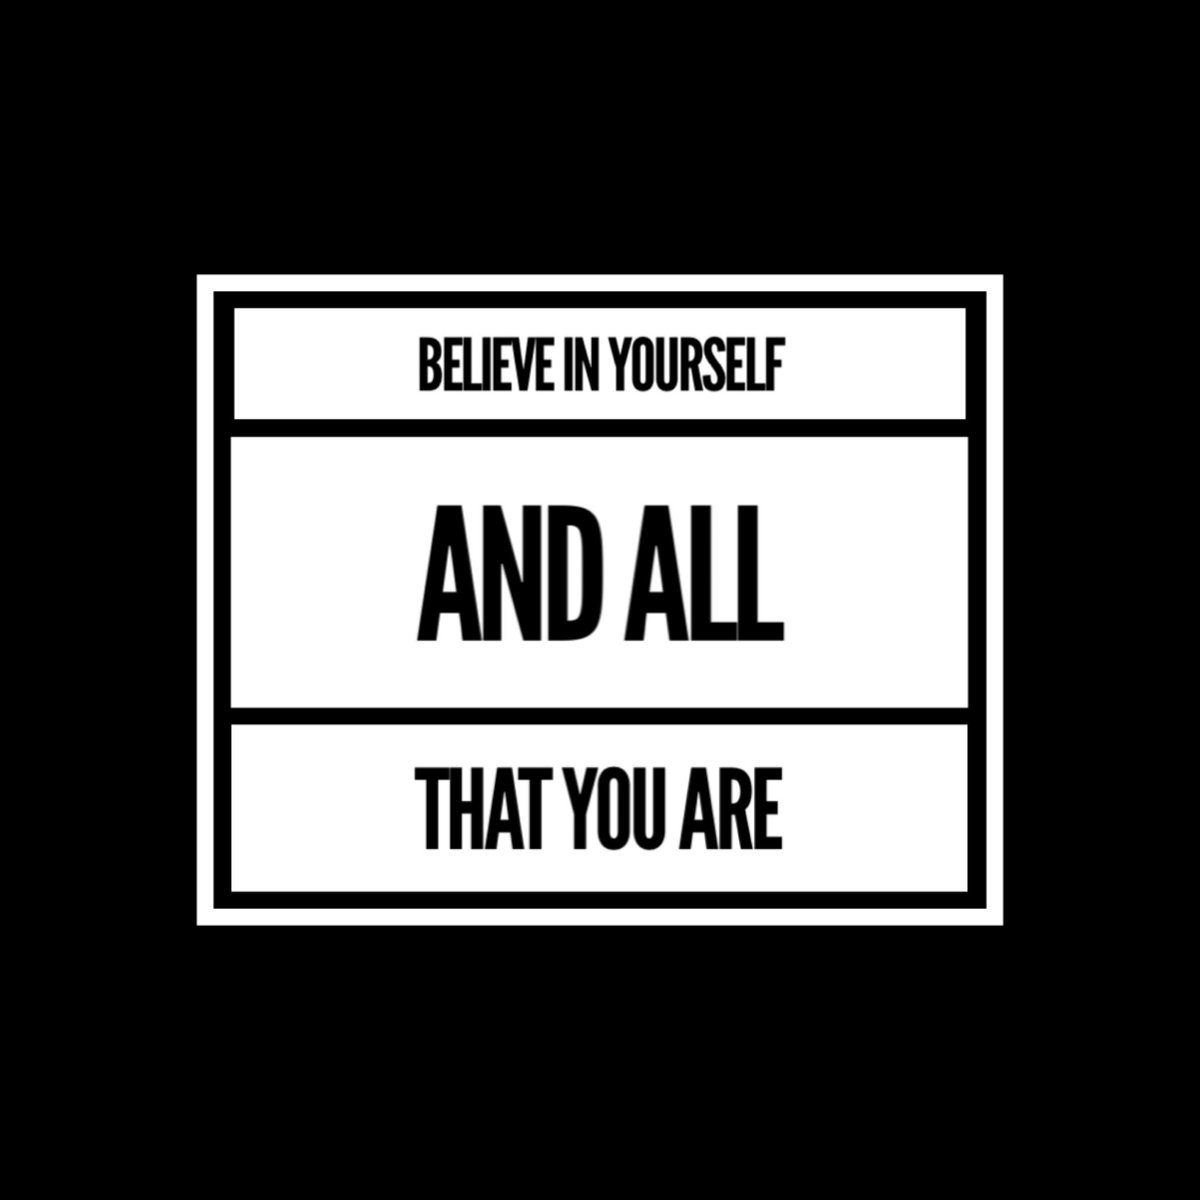 """""""Believe in yourself and all that you are."""" Christian D. Larson • • • #menwhoadventure #menwhoinspire #truthtellers #men #mens #mensforum #club #mensclub #group #mensgroup #menonly #menstribe #tips #advice #platform #qotd #forumpic.twitter.com/iWOYdWeLFS"""